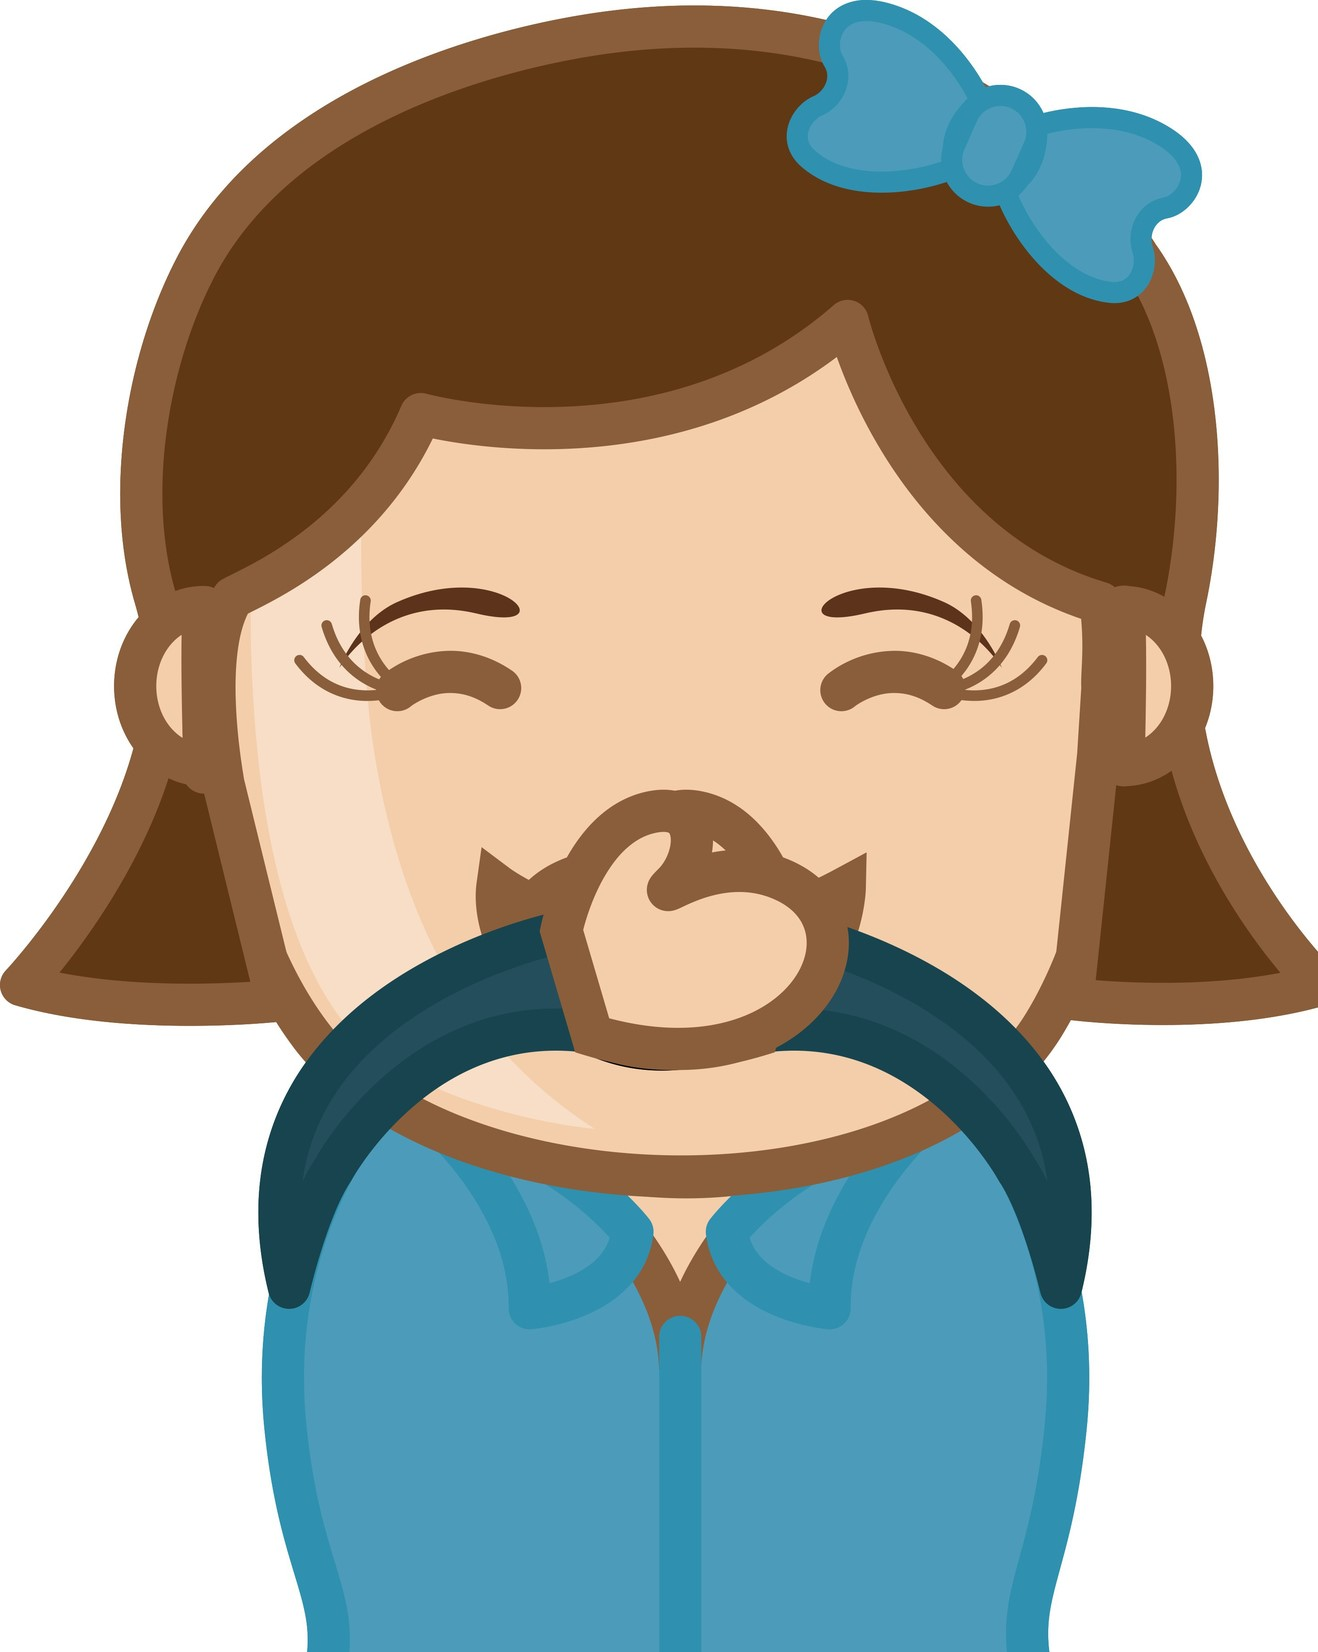 laughing-business-cartoon-female-character-vector_GykPEk_d_L (2)